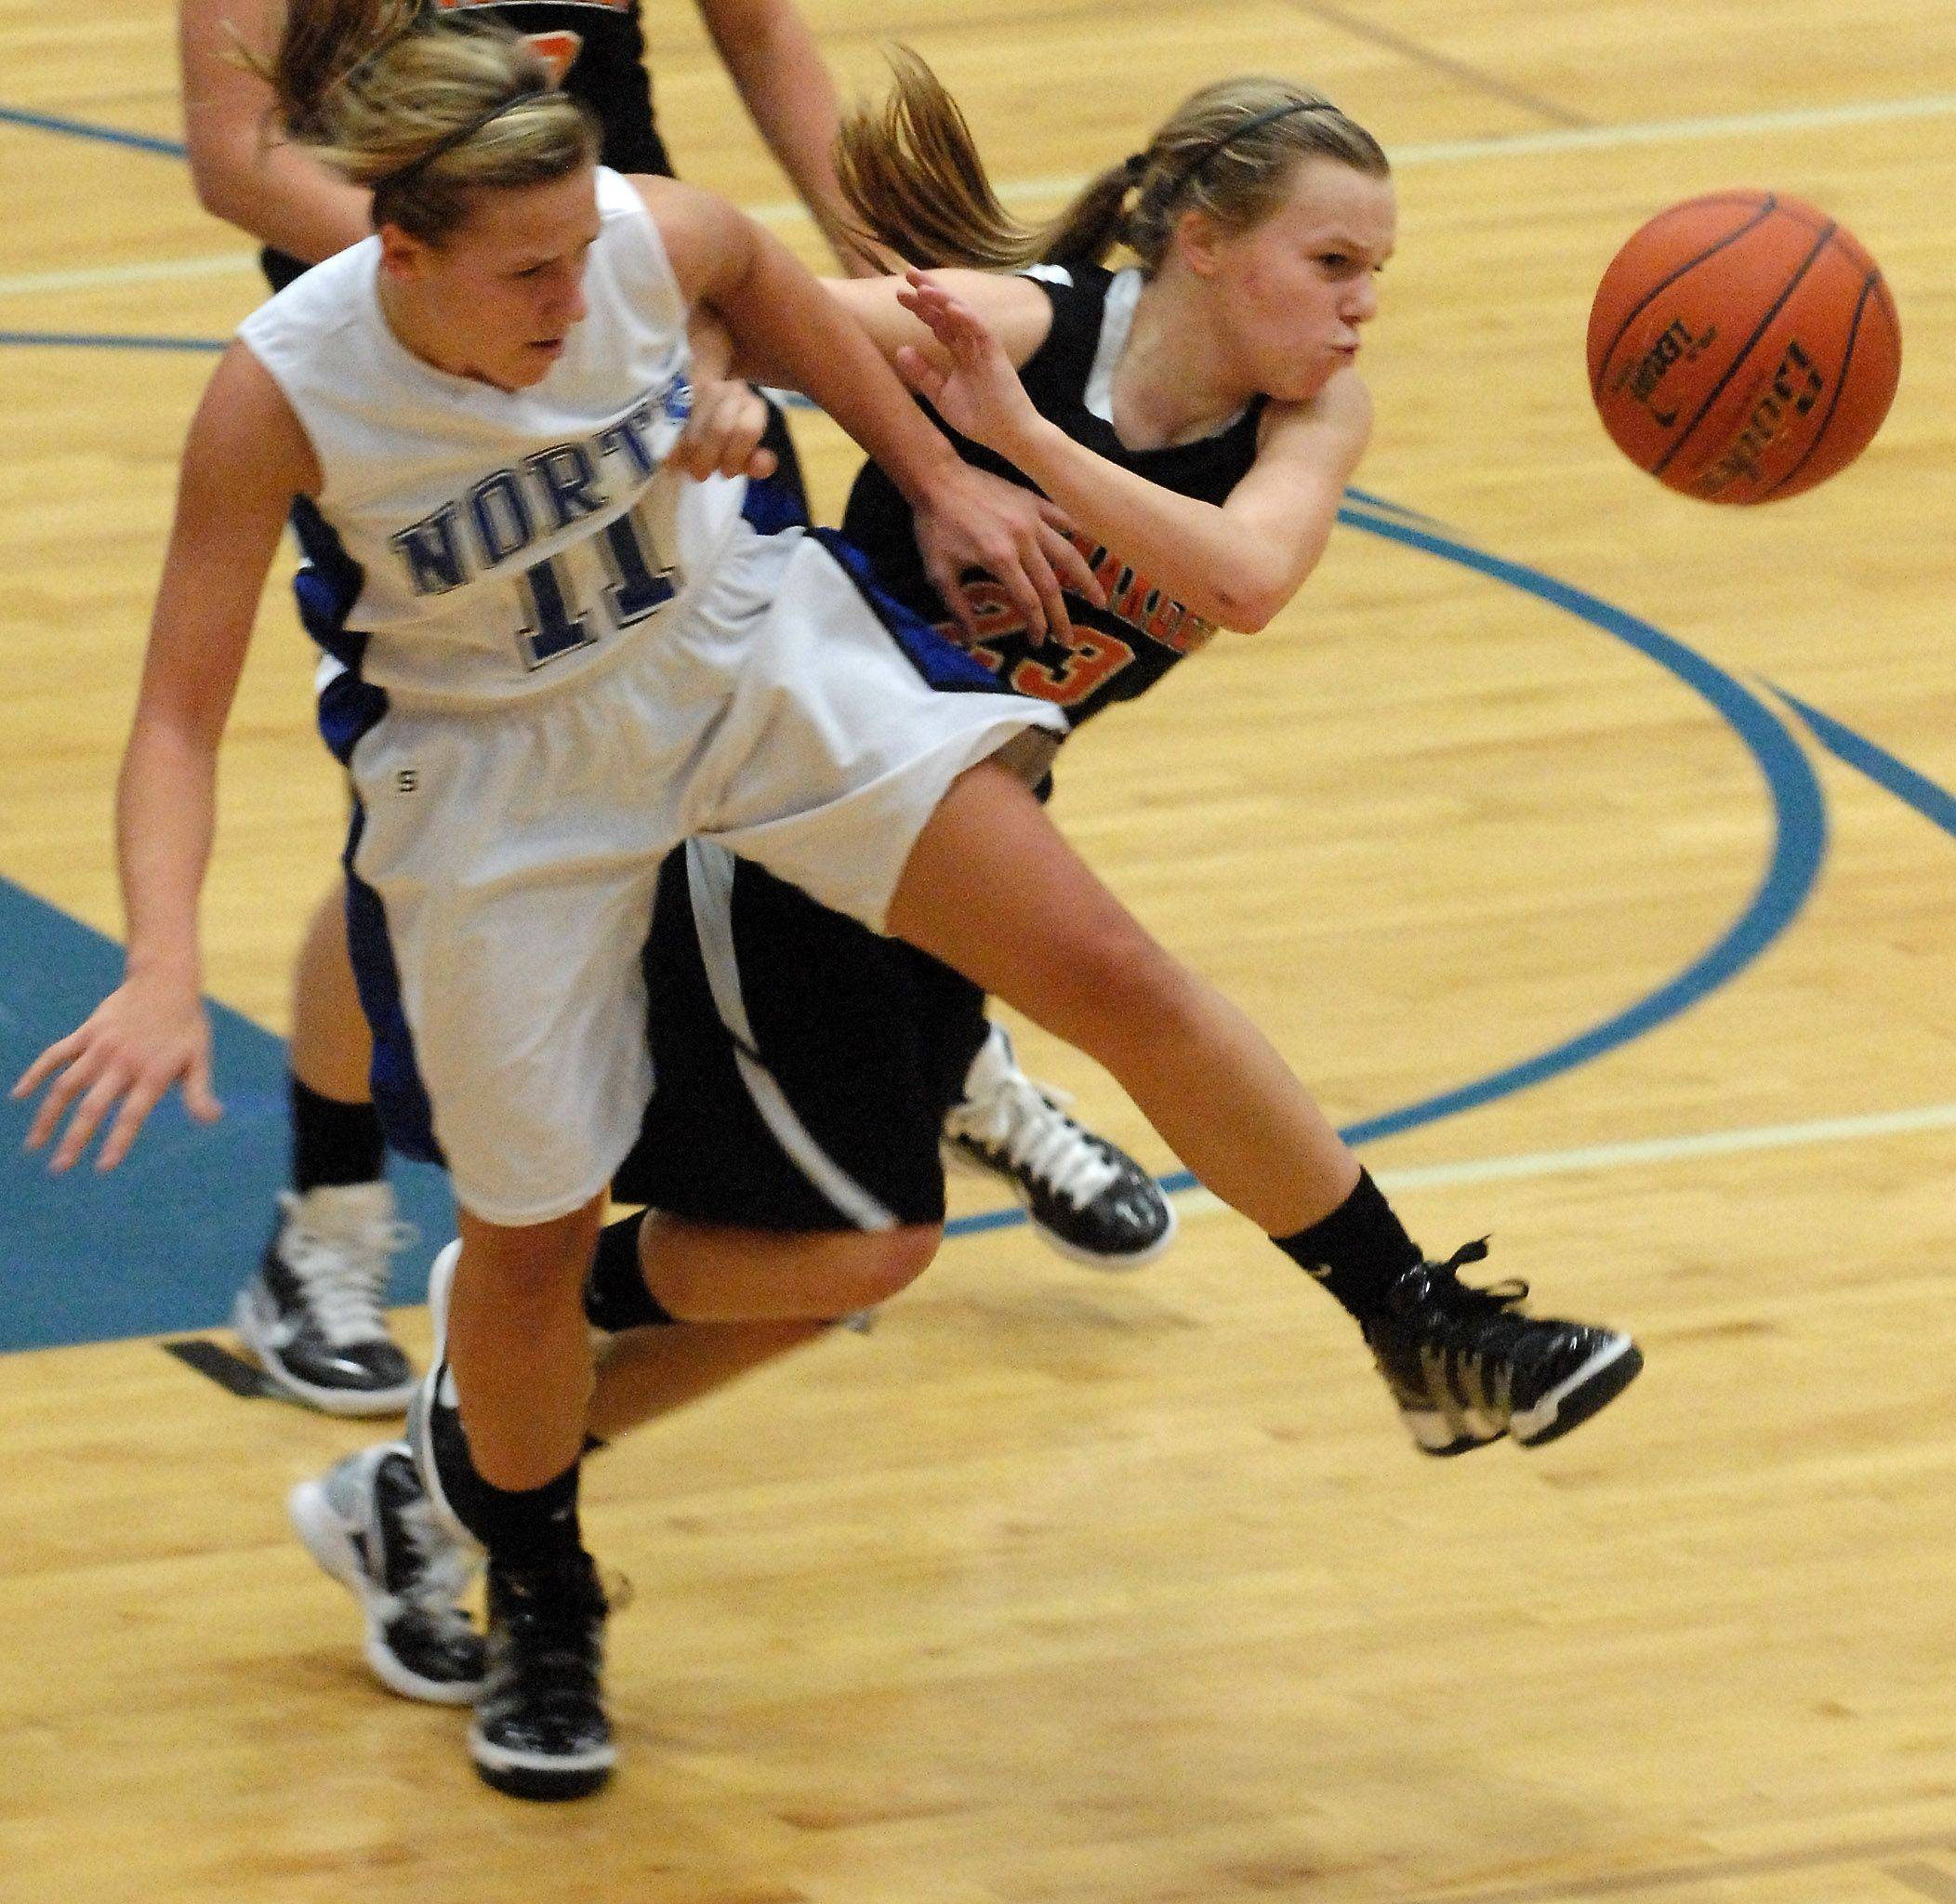 St. Charles North's Megan Booe and St. Charles East's Amanda Hilton scramble for a loose ball during Friday's game at St. Charles North.